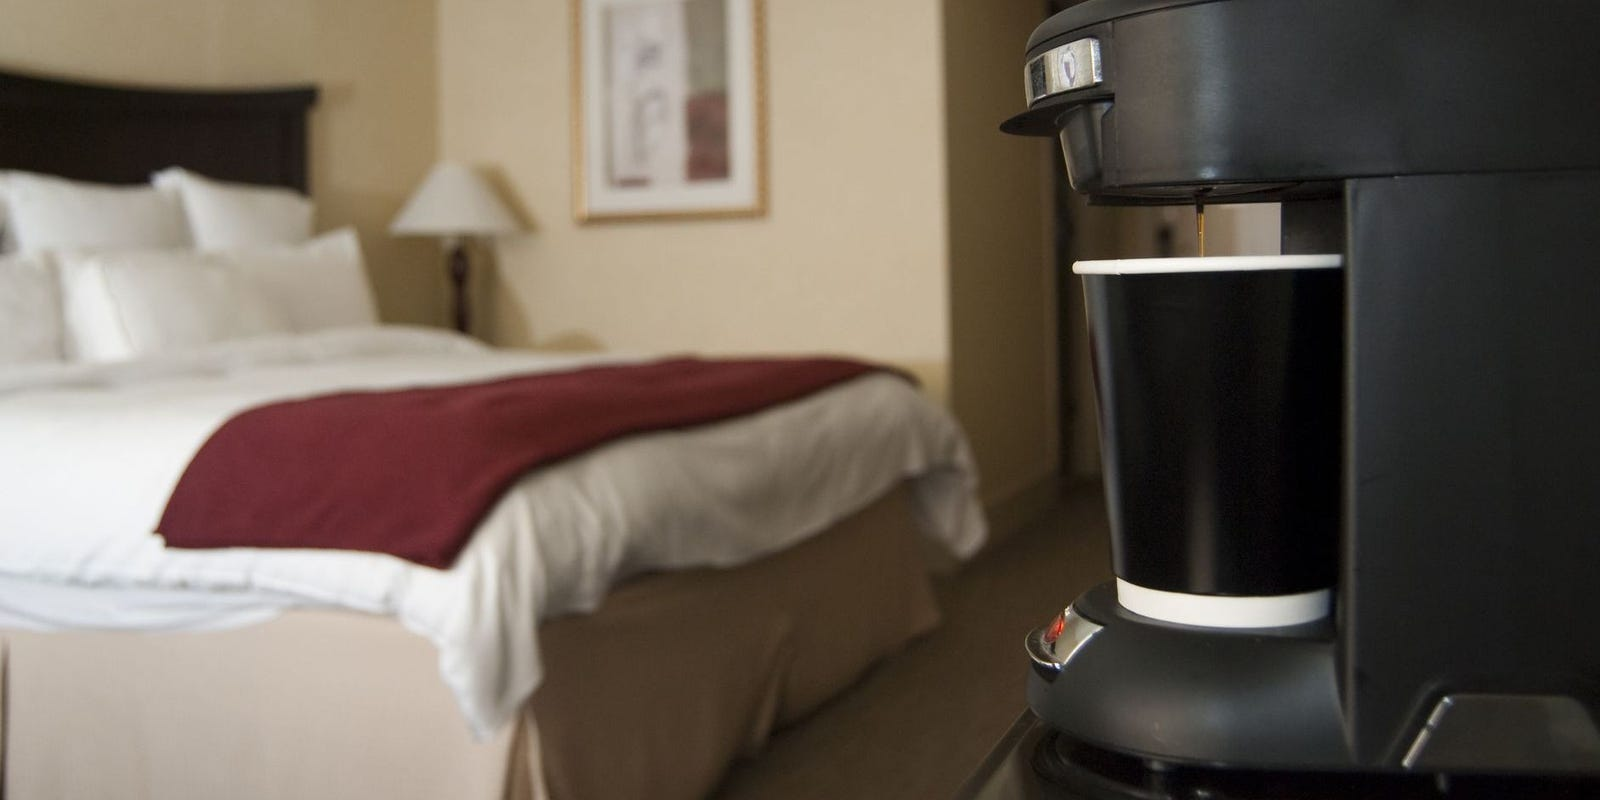 Hotels may have to lay off more employees amid COVID-19, per survey